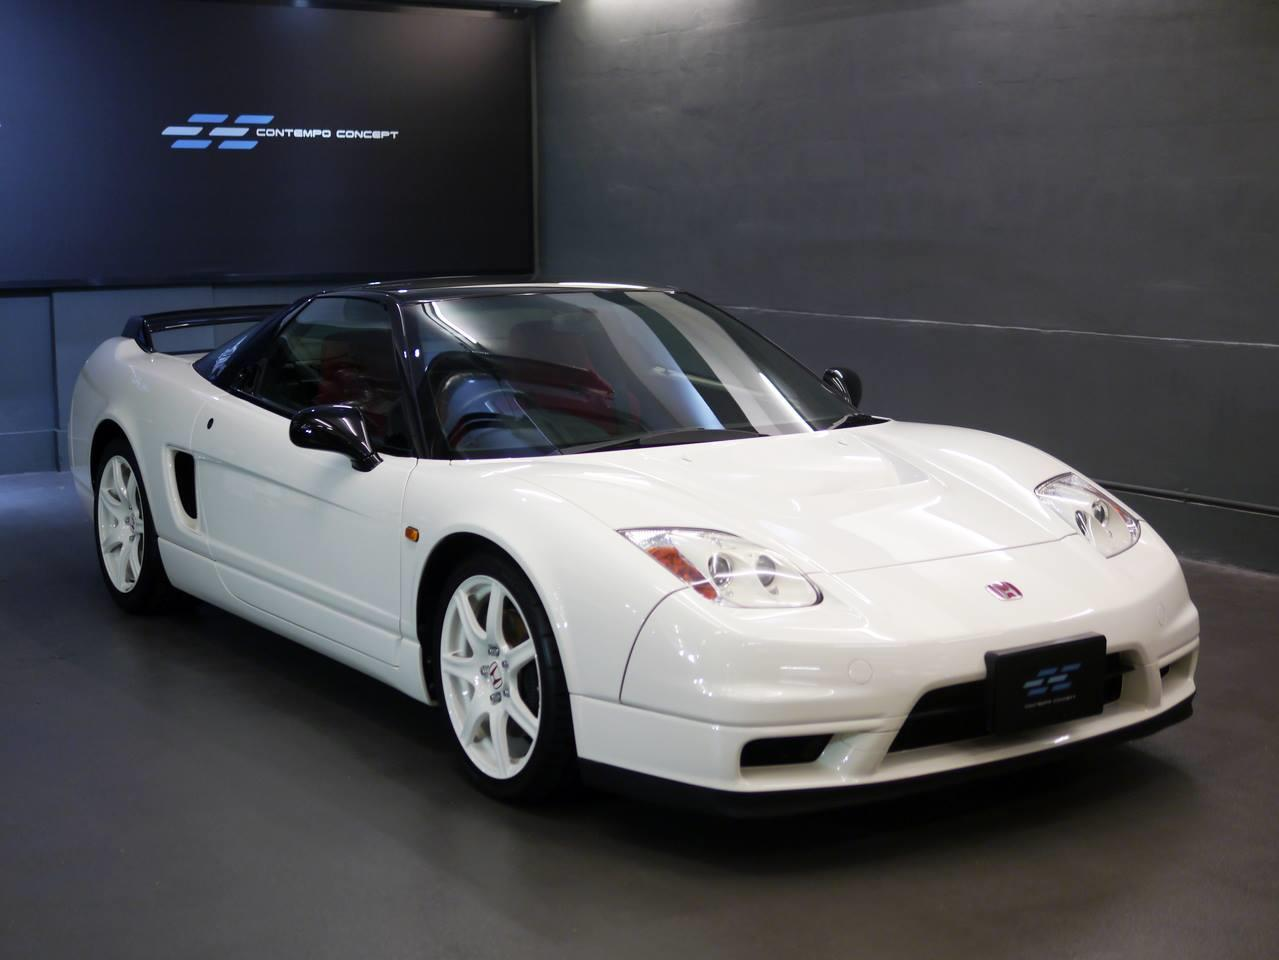 Honda Nsx R Photo And Video Review Comments Ford 7840 Wiring Diagram